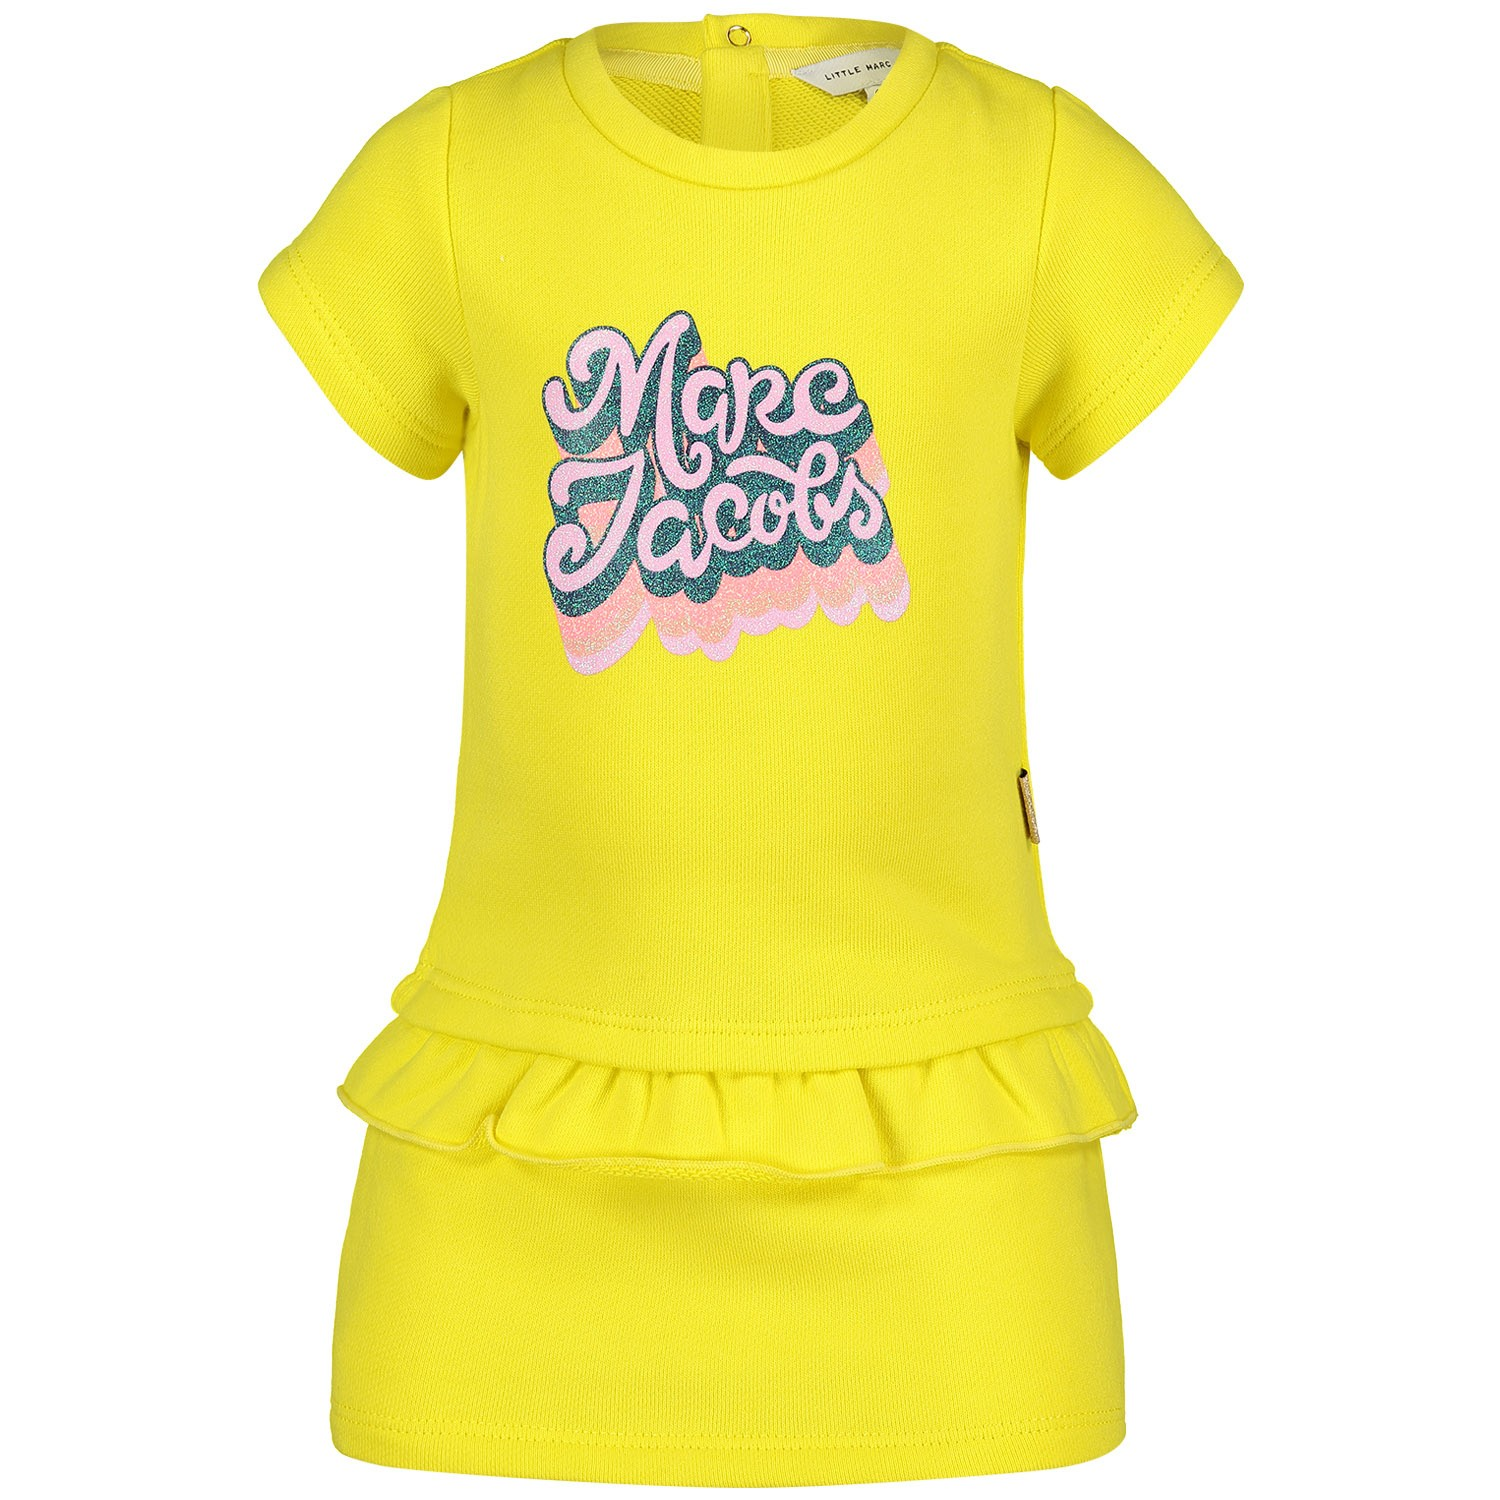 9e5707295 Picture of Marc Jacobs W02122 baby dress yellow. Touch to zoom